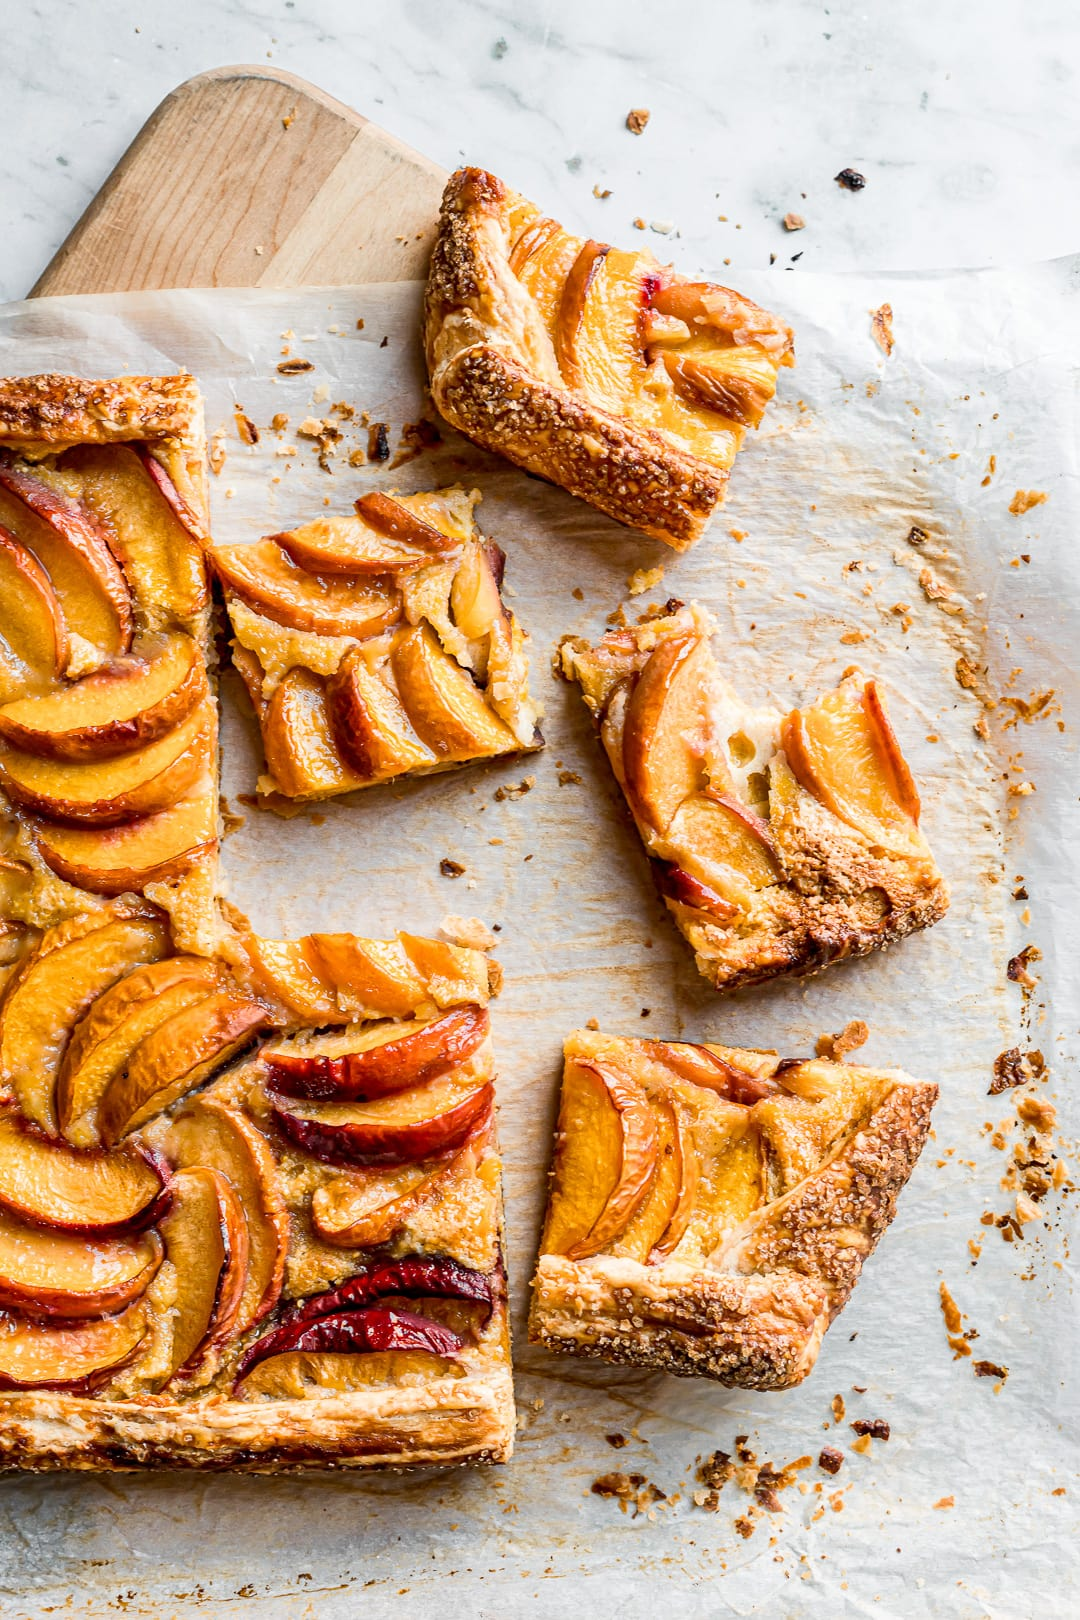 Peach galette slices on parchment paper and a cutting board